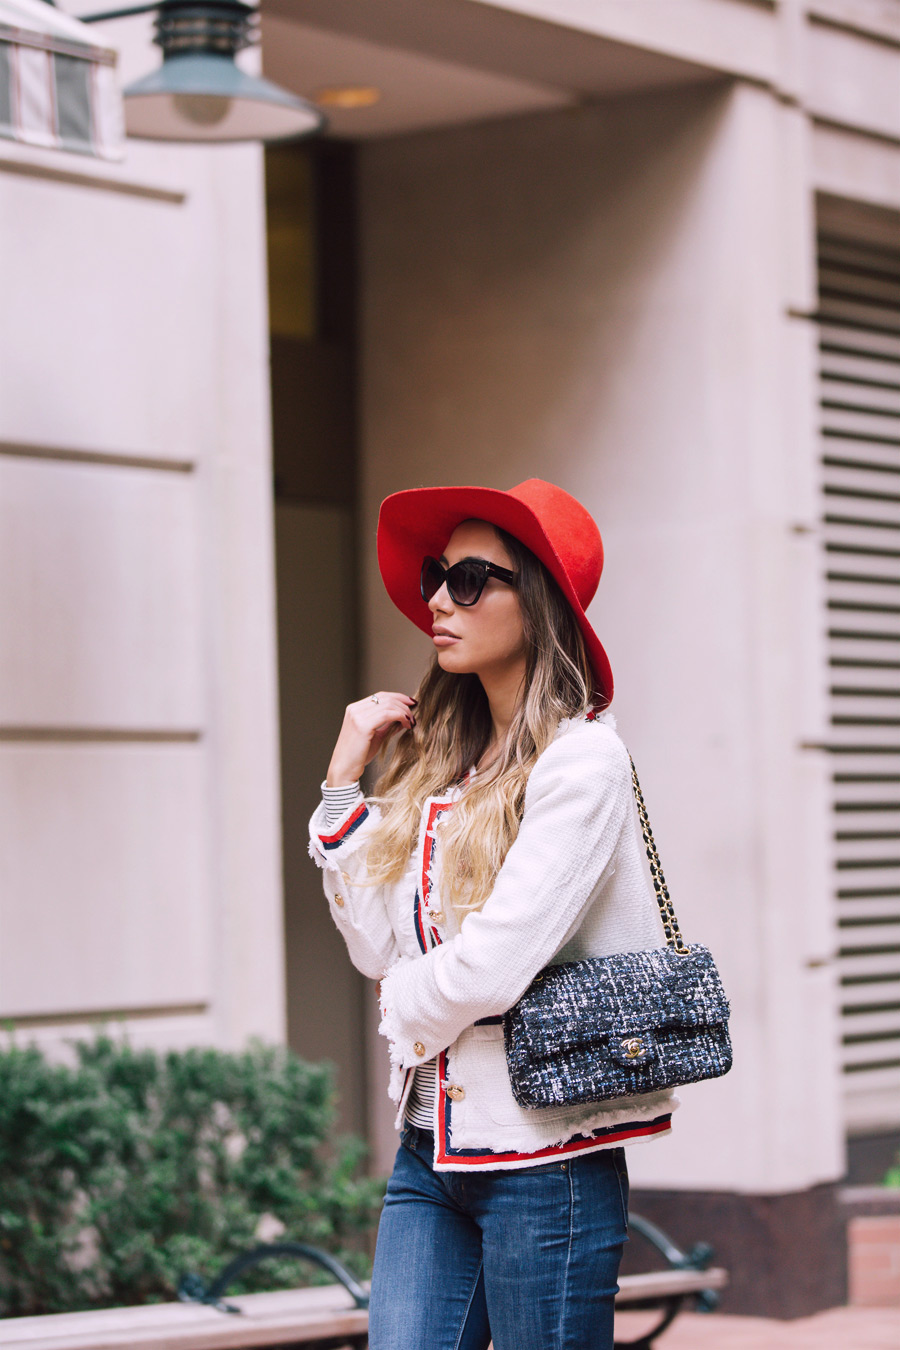 Chanel bag and white tweed jacket by Make Me Chic. Emilio Pucci red hat for fall autumn.